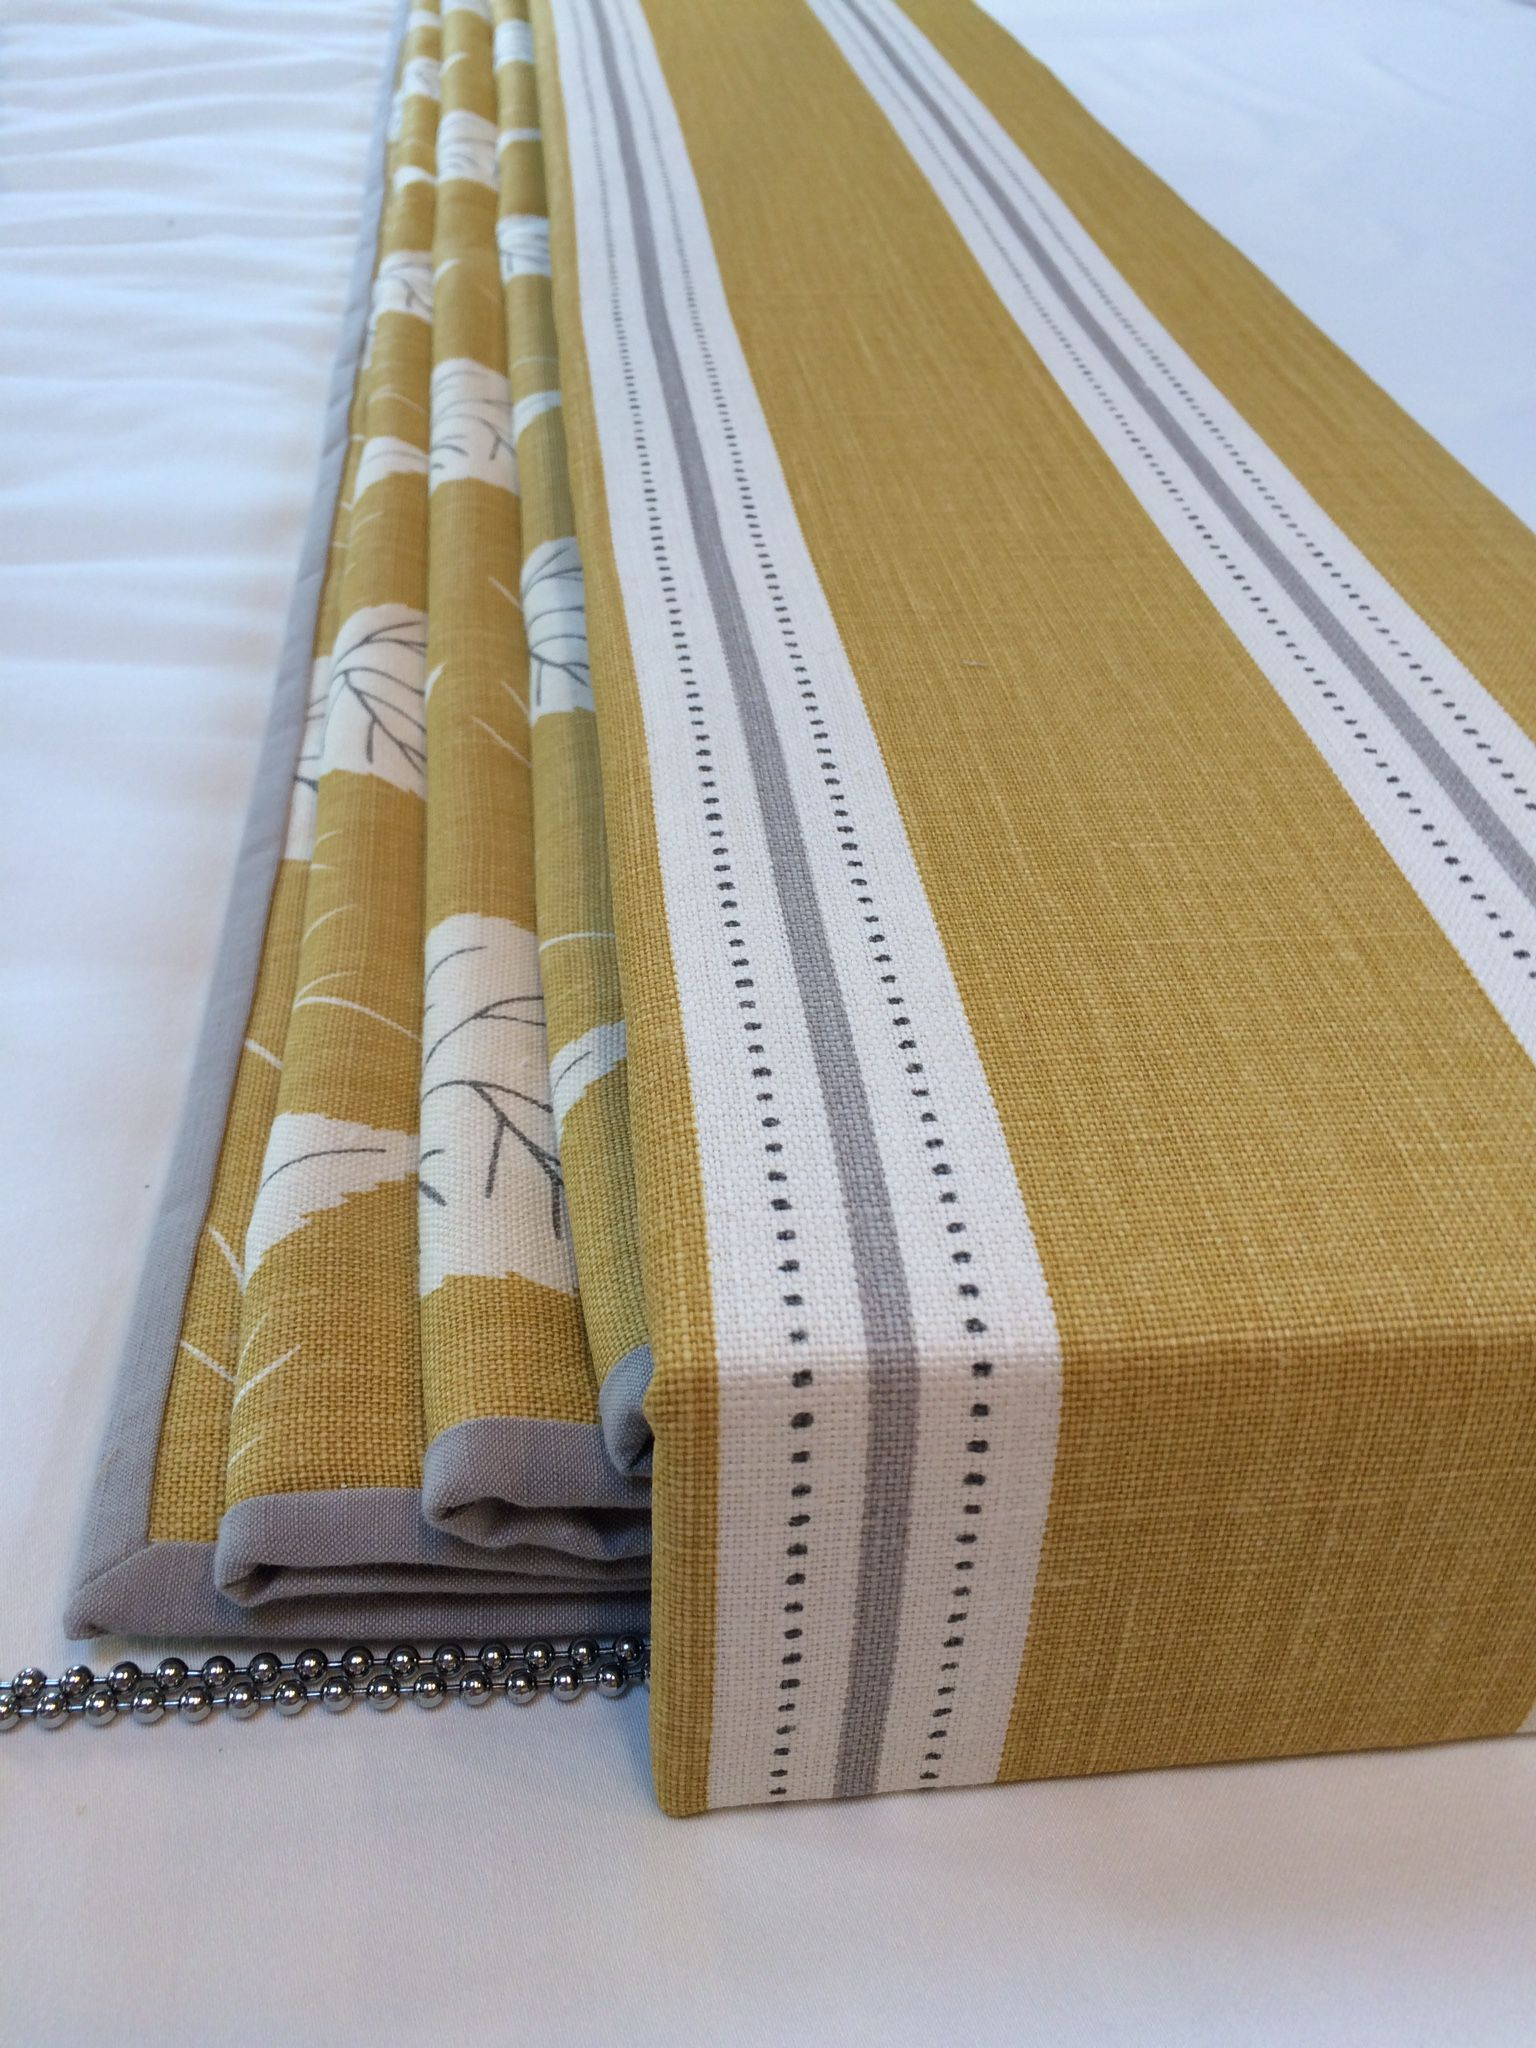 Contrast bordered roman blind given that added interest with a